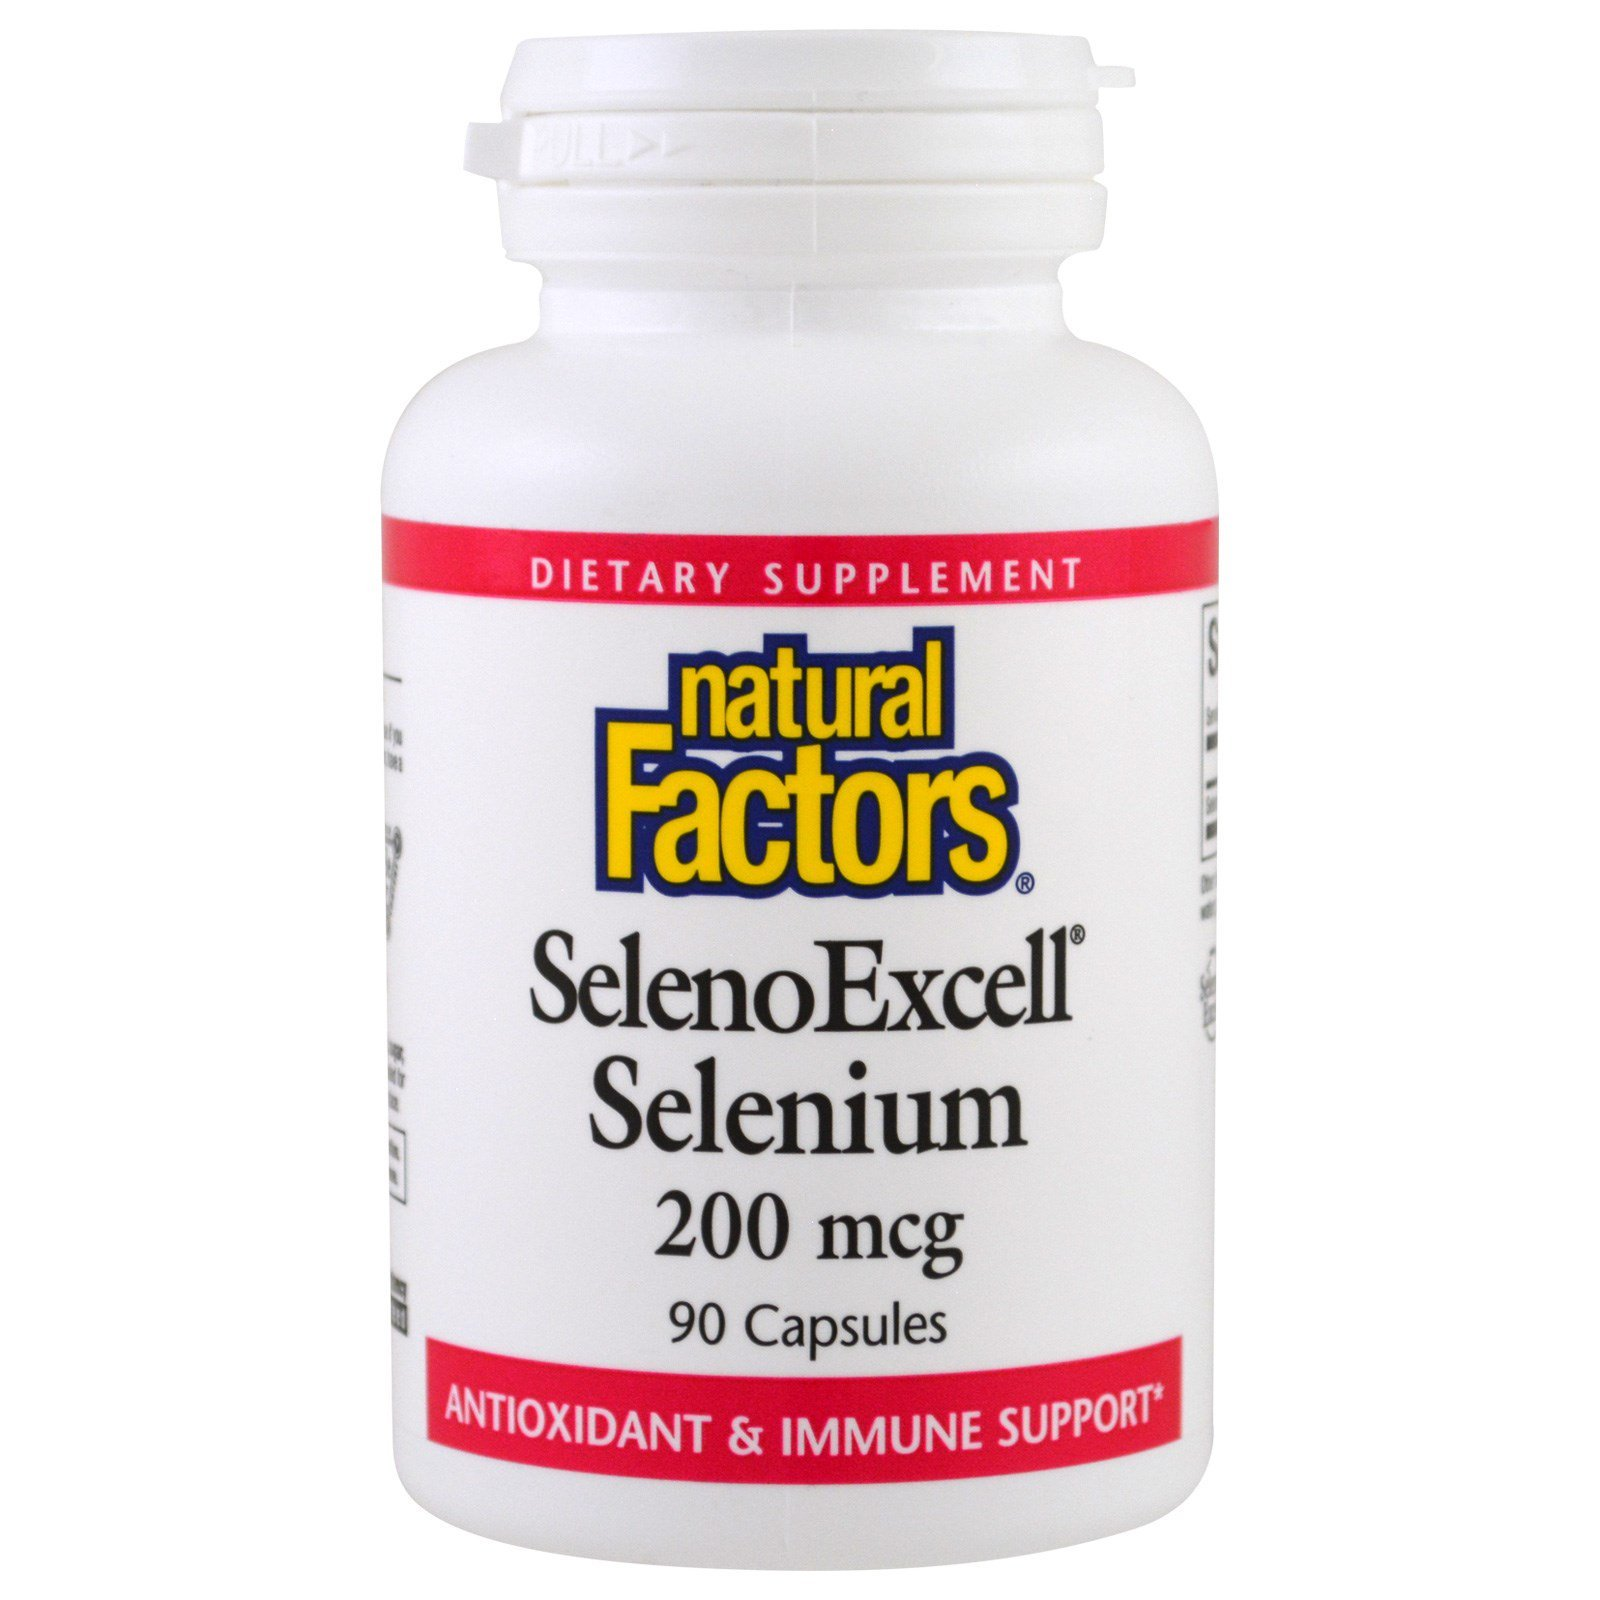 Natural Factors, SelenoExcell, селен, 200 мкг, 90 капсул